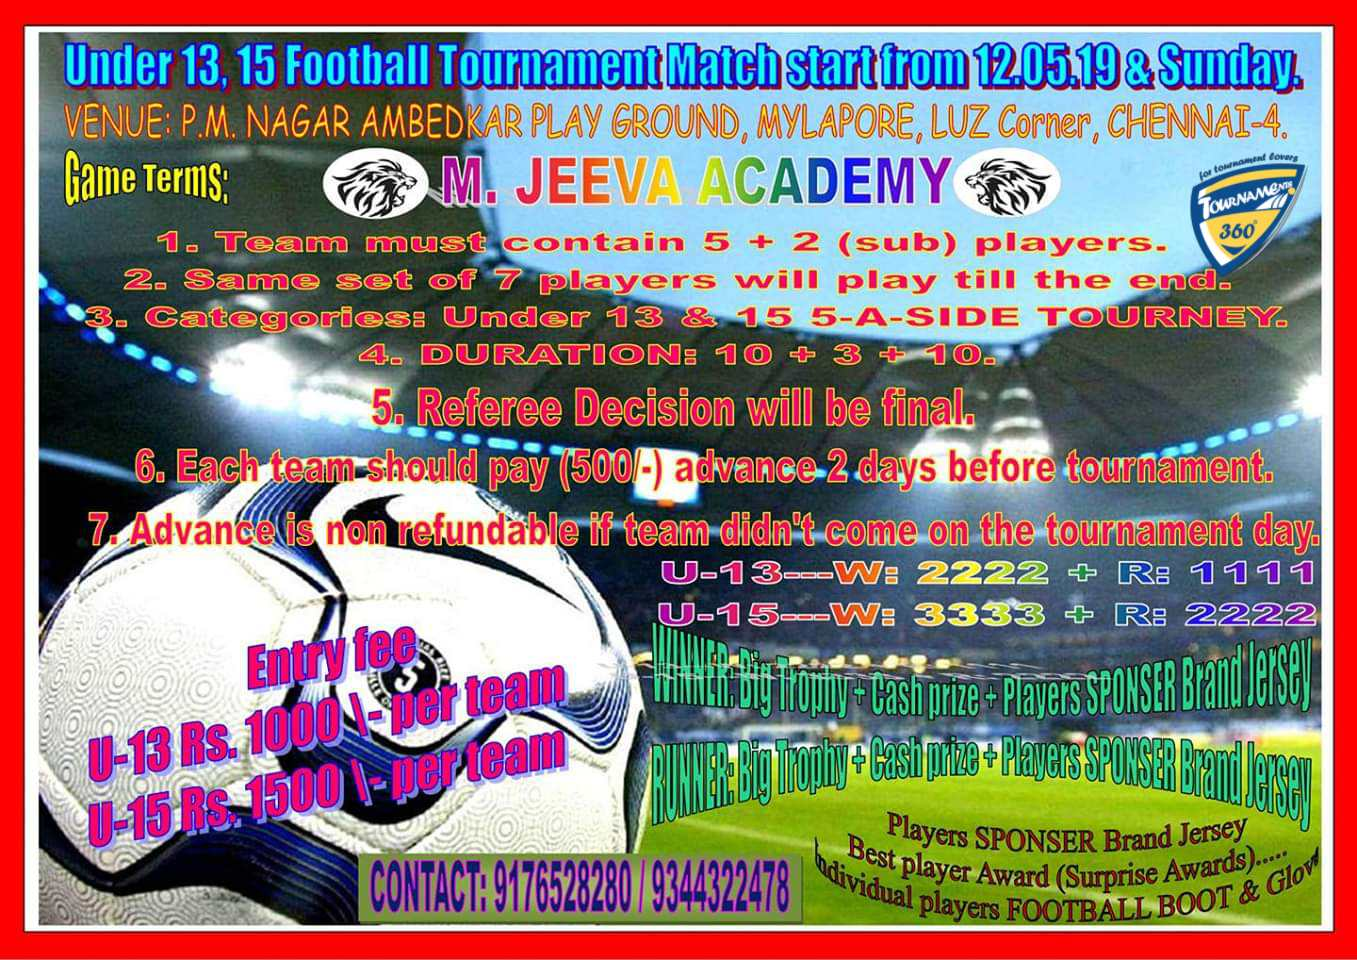 Under 13 and Under 15 Football Tournament